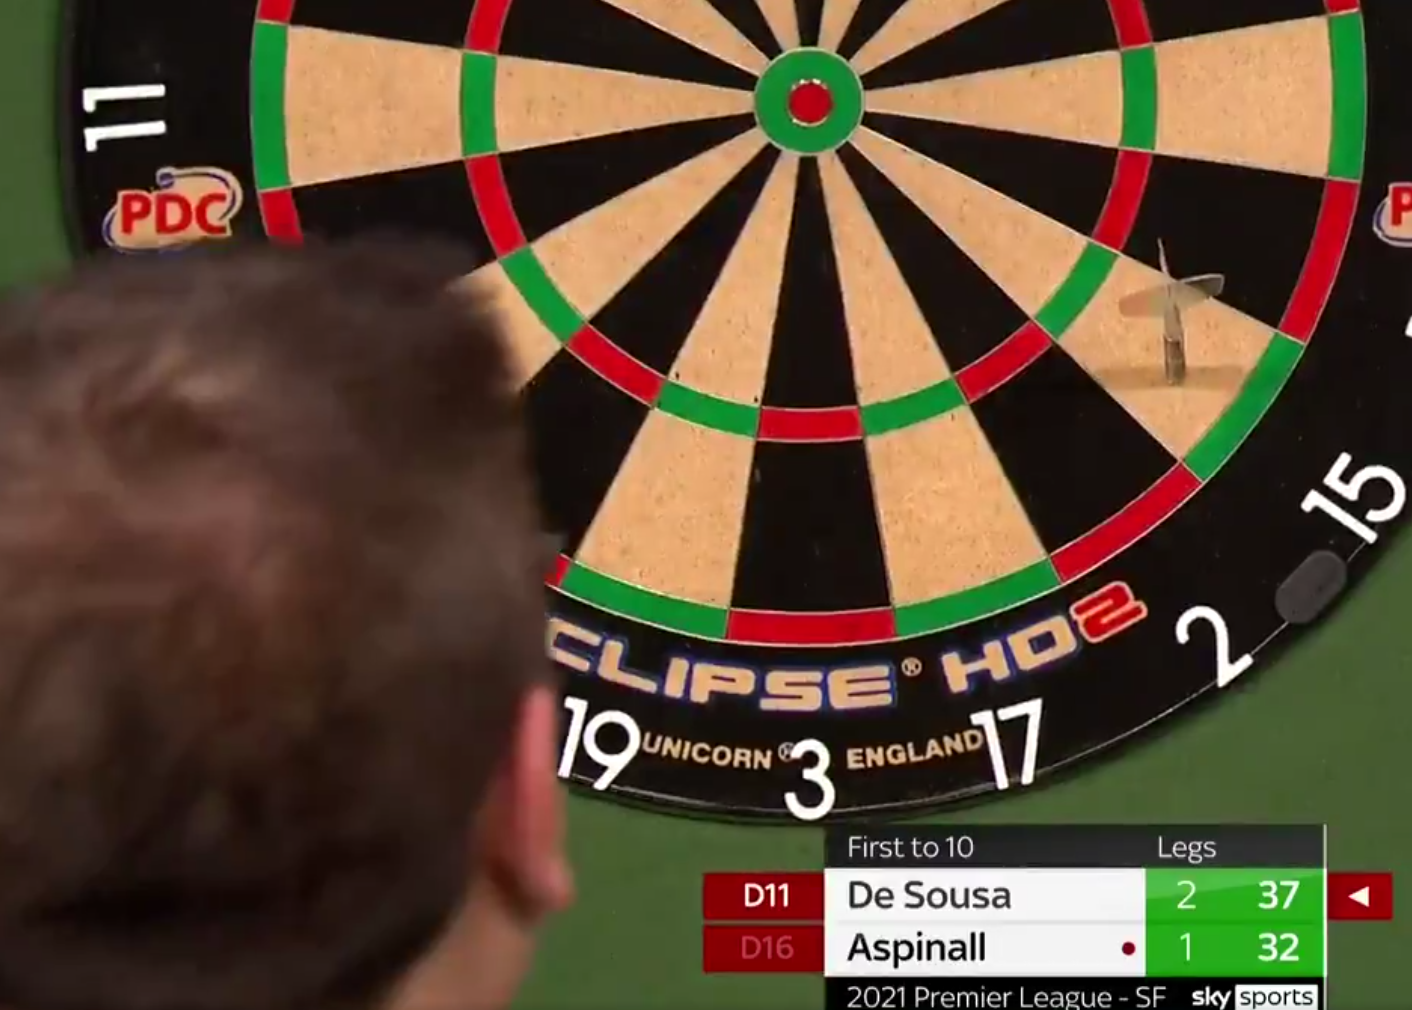 VIDEO: Jose de Sousa Miscounts TWICE In A Row And Busts 37…